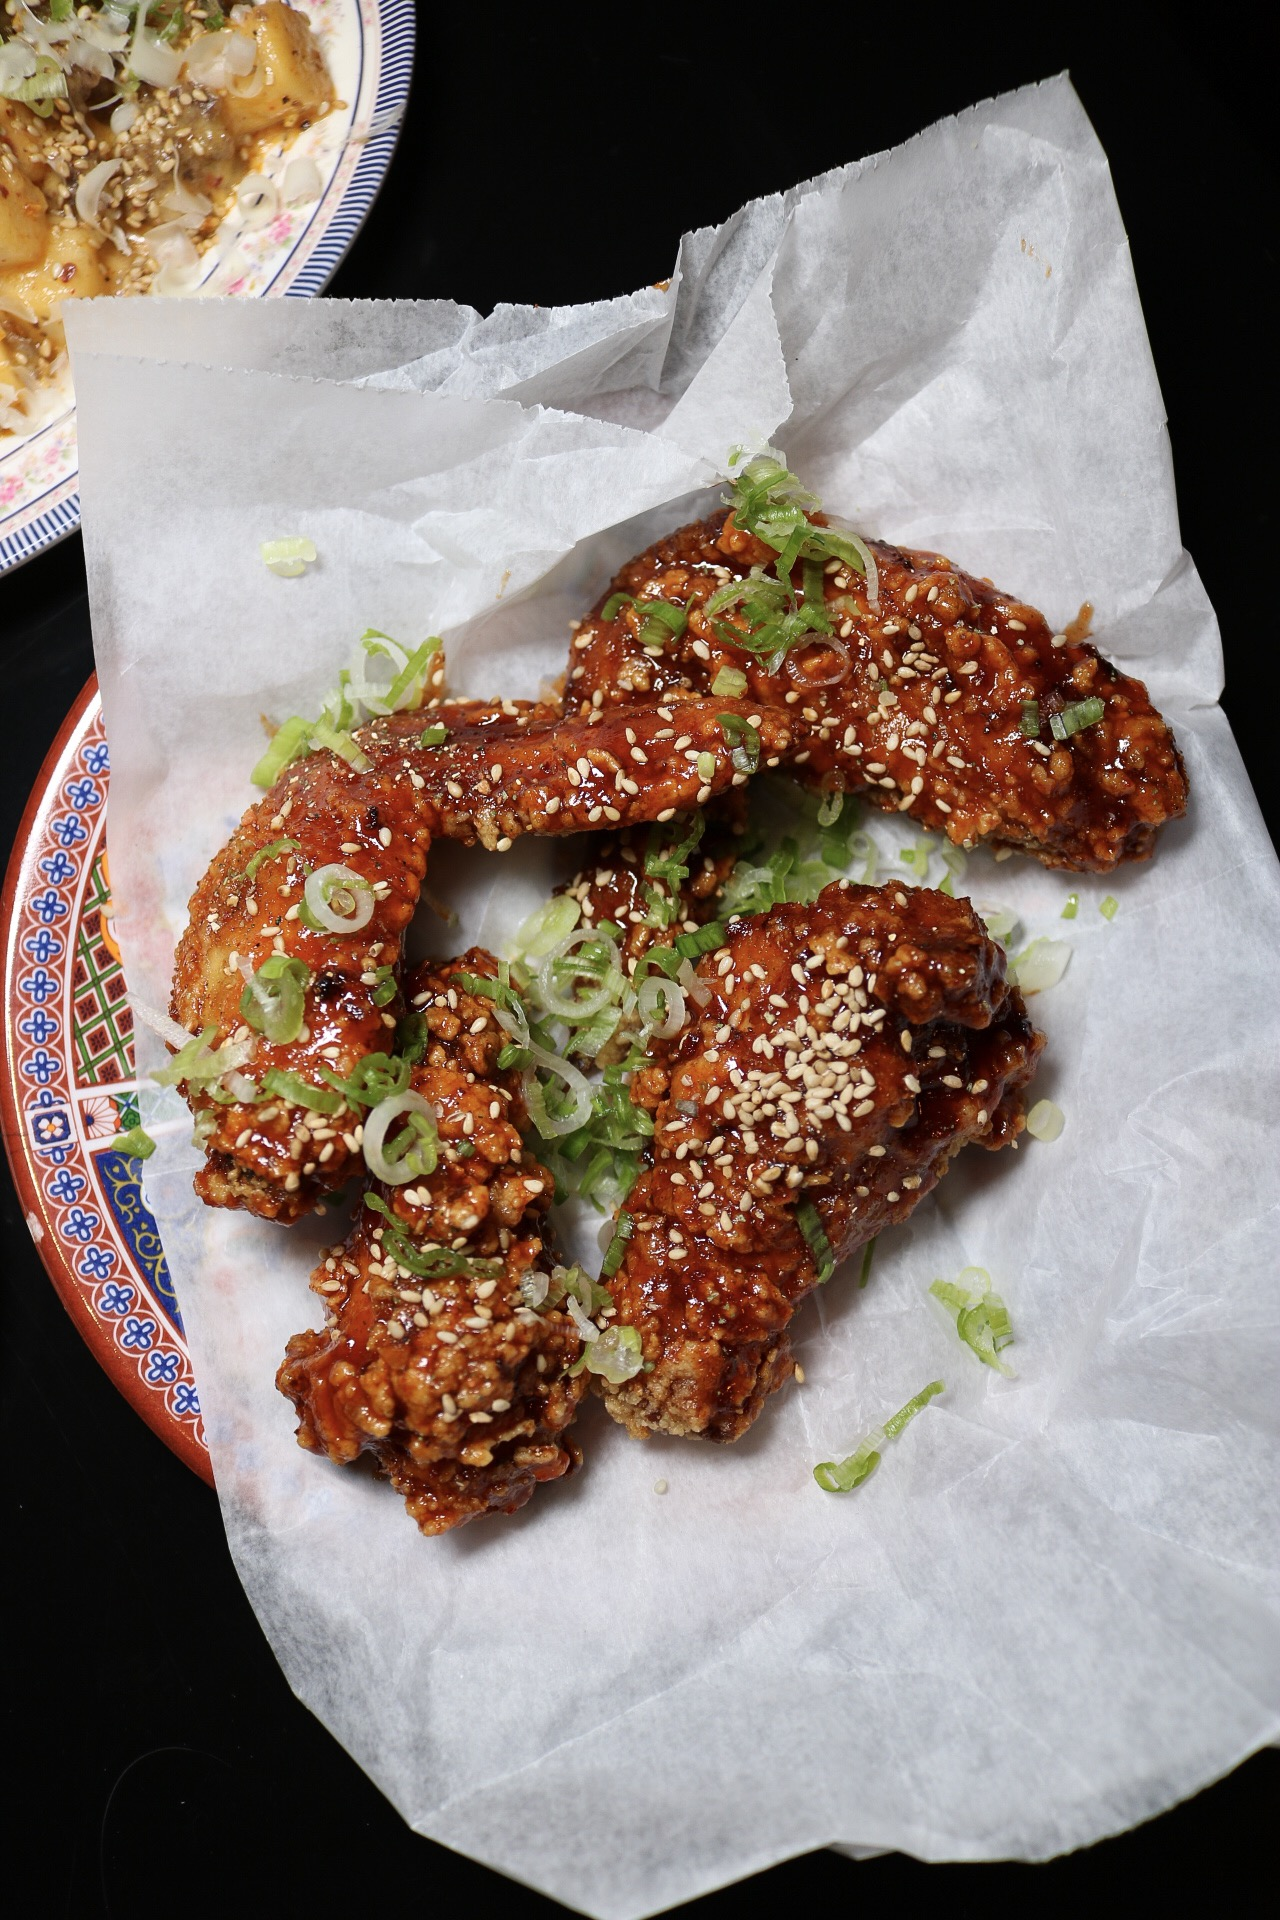 Shin Ramen Spiced Chicken Wings